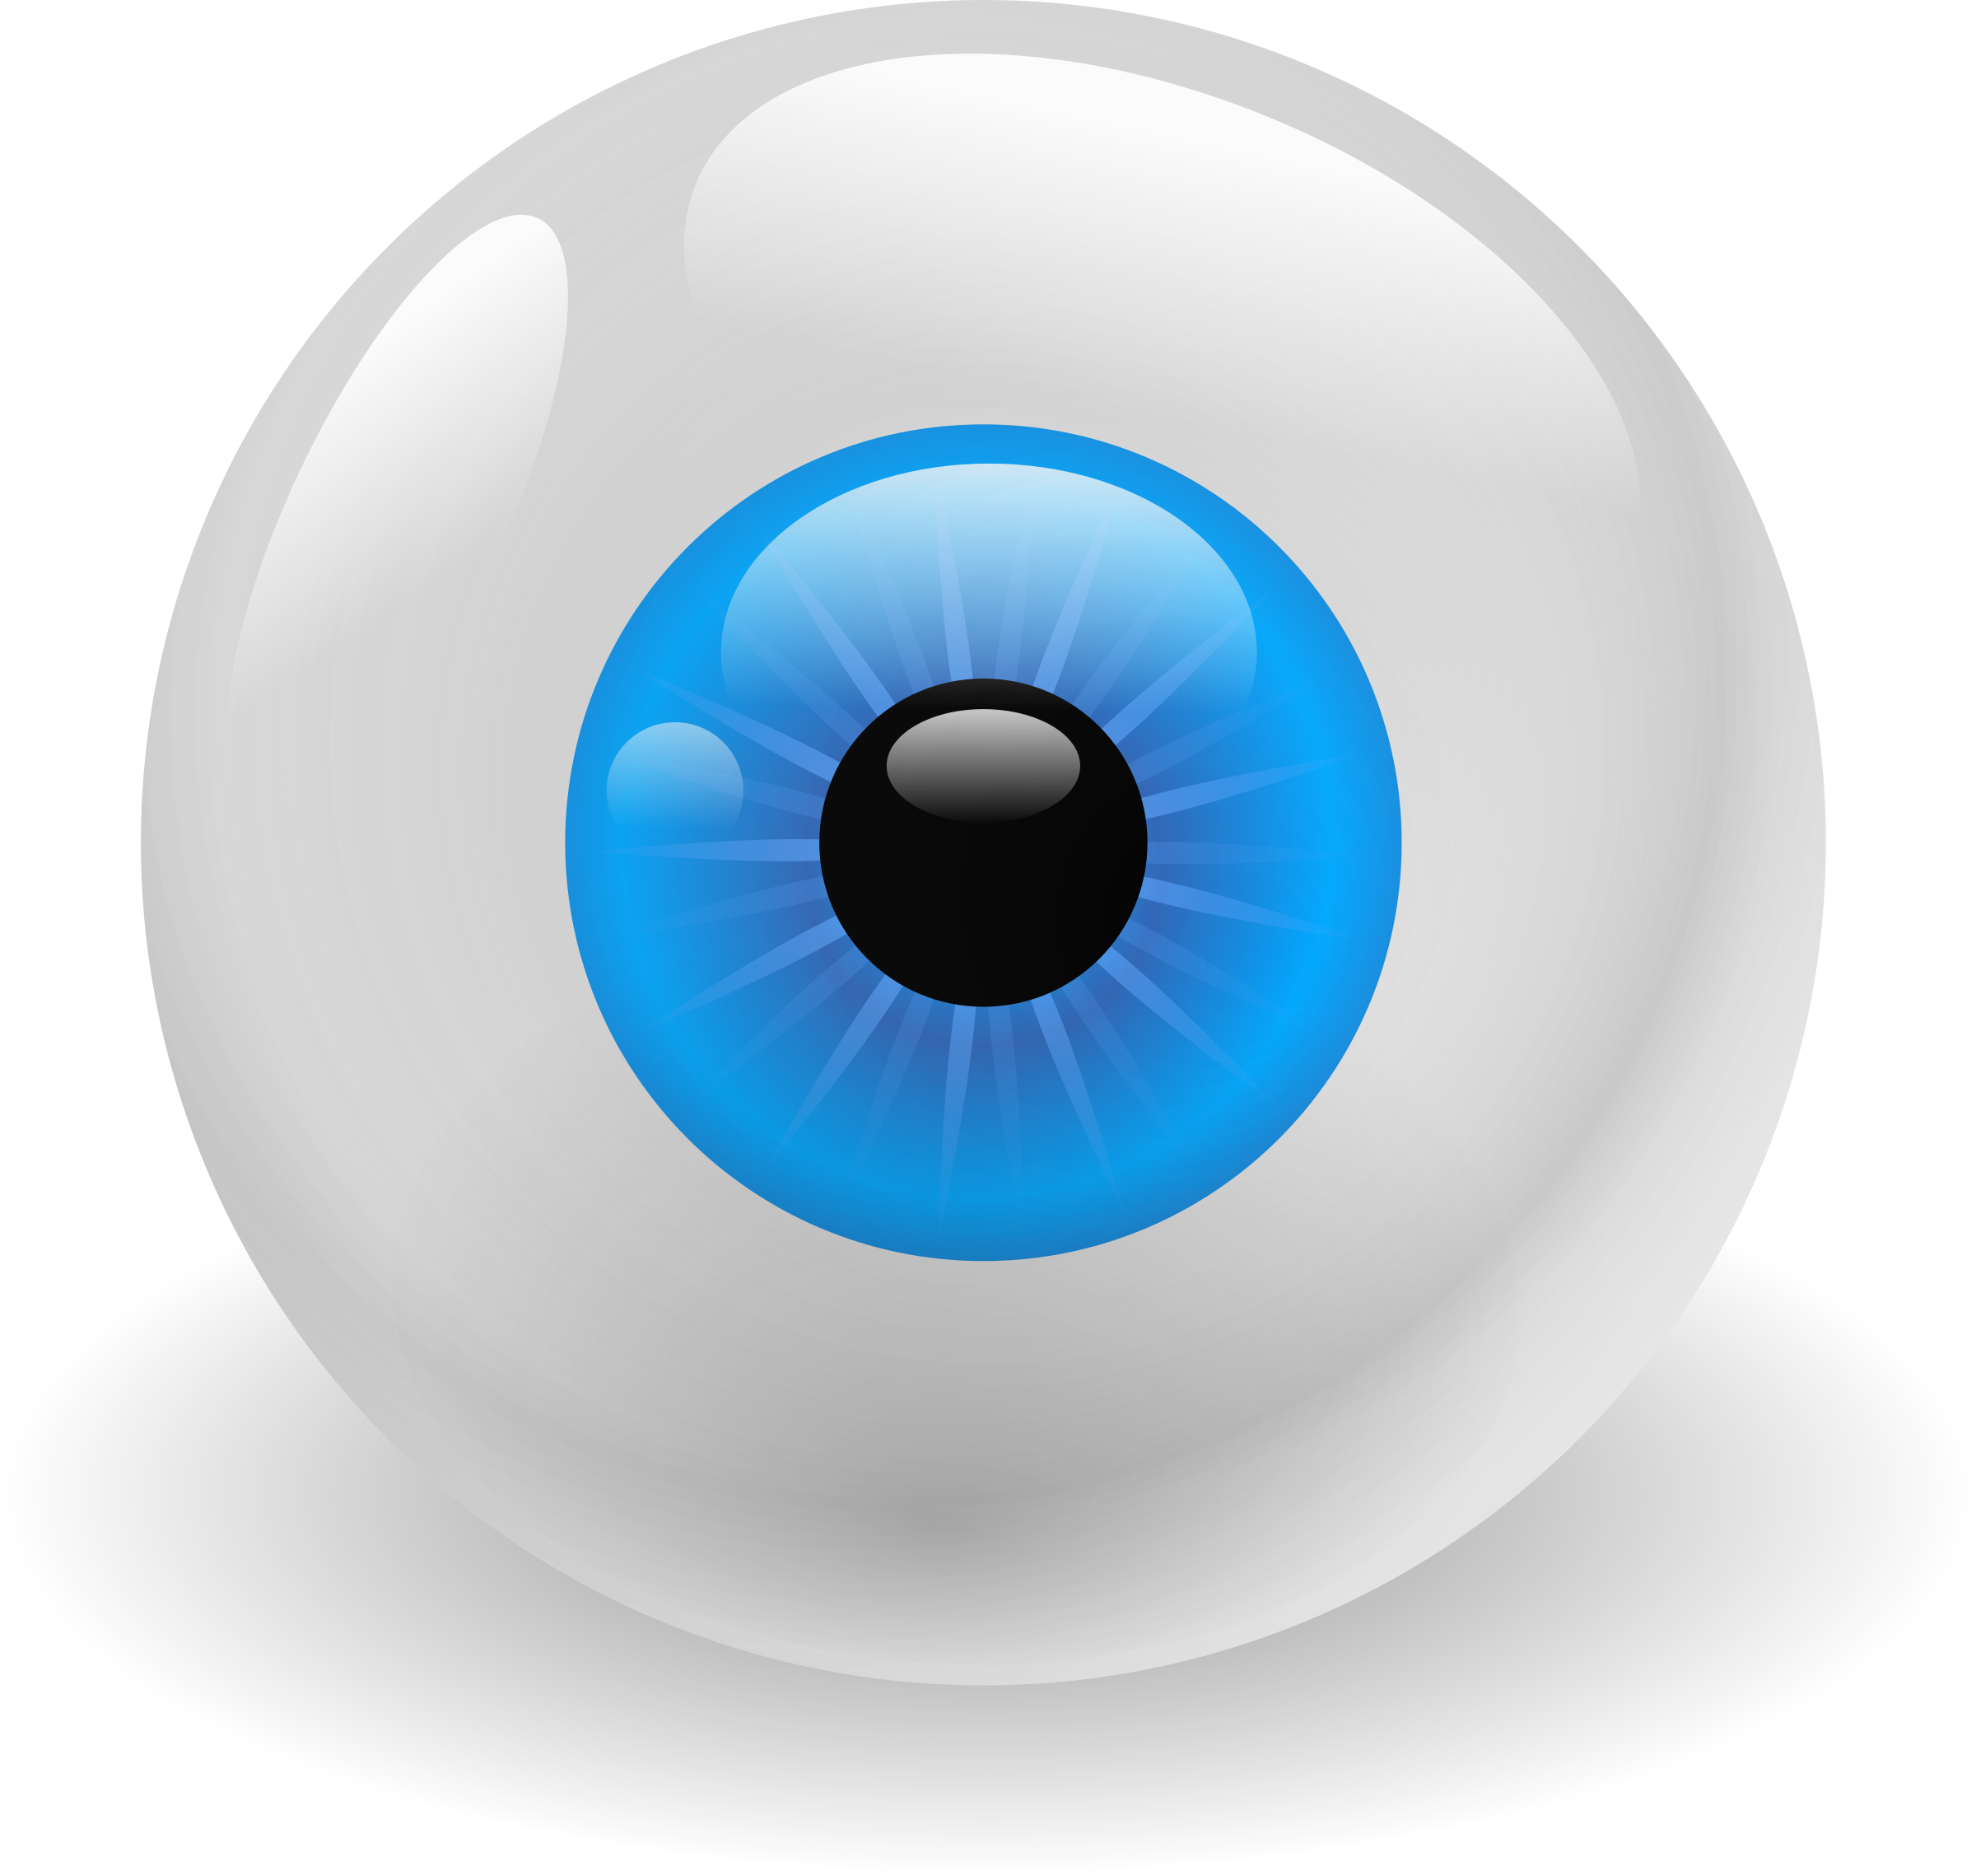 Vision clipart vector. Eyes png images free